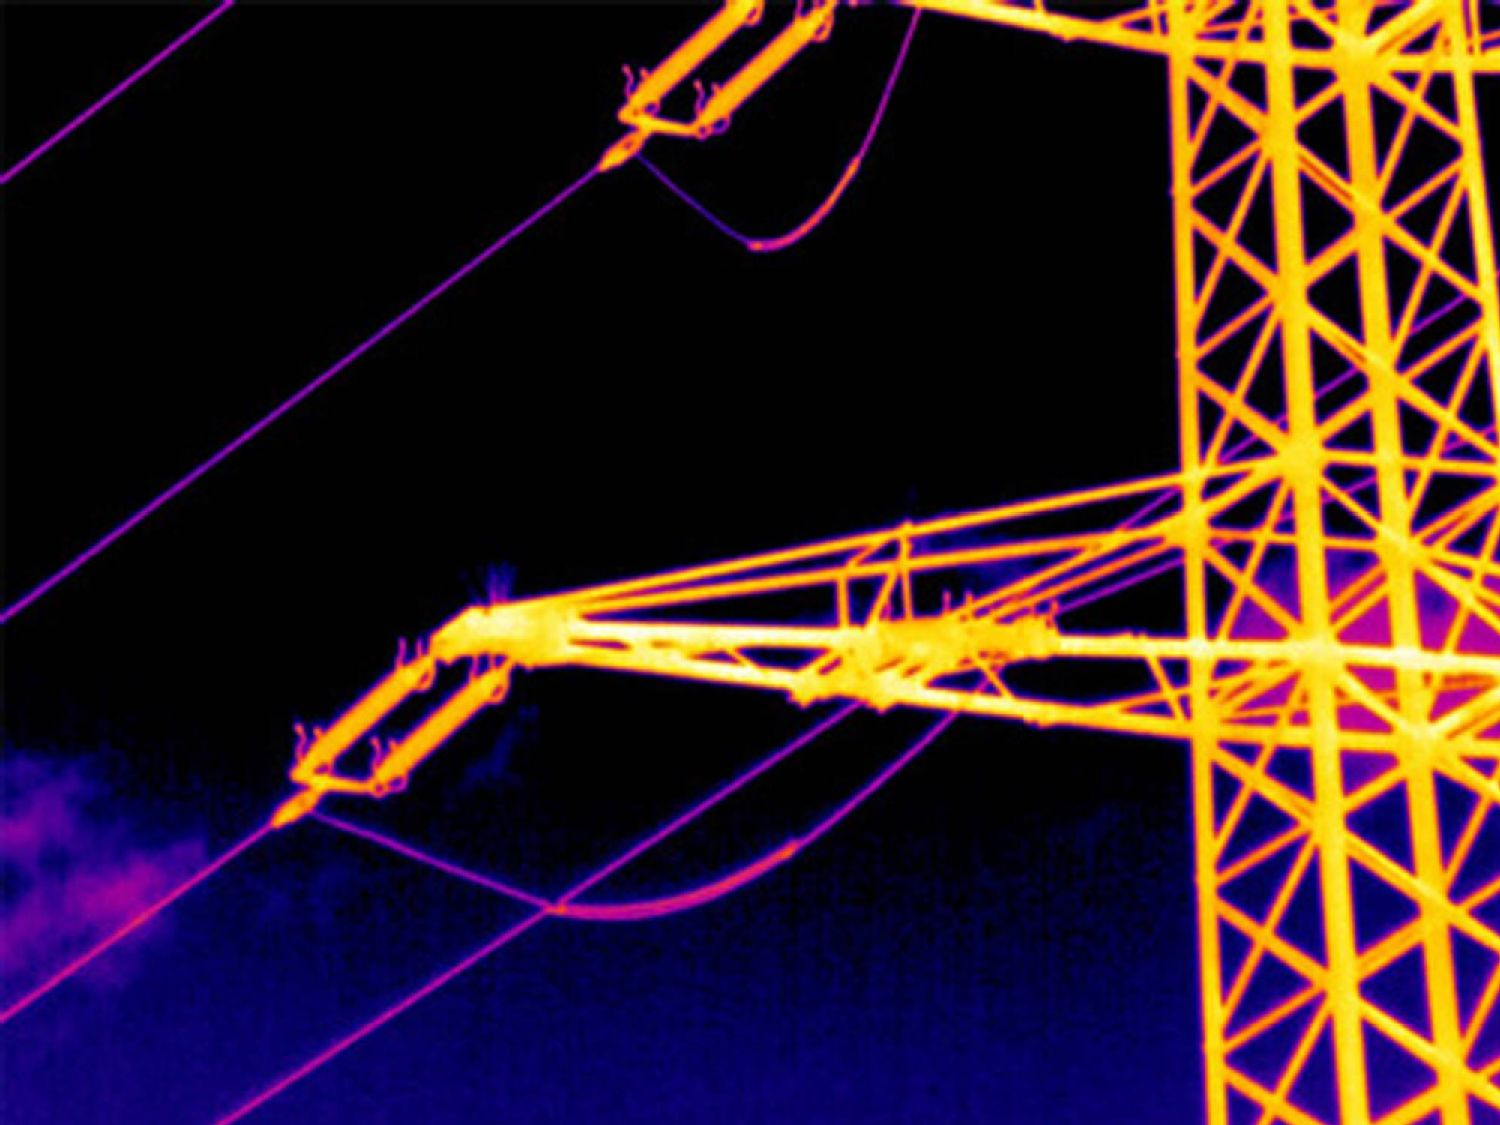 thermography-electricitity-2000x1500.jpg